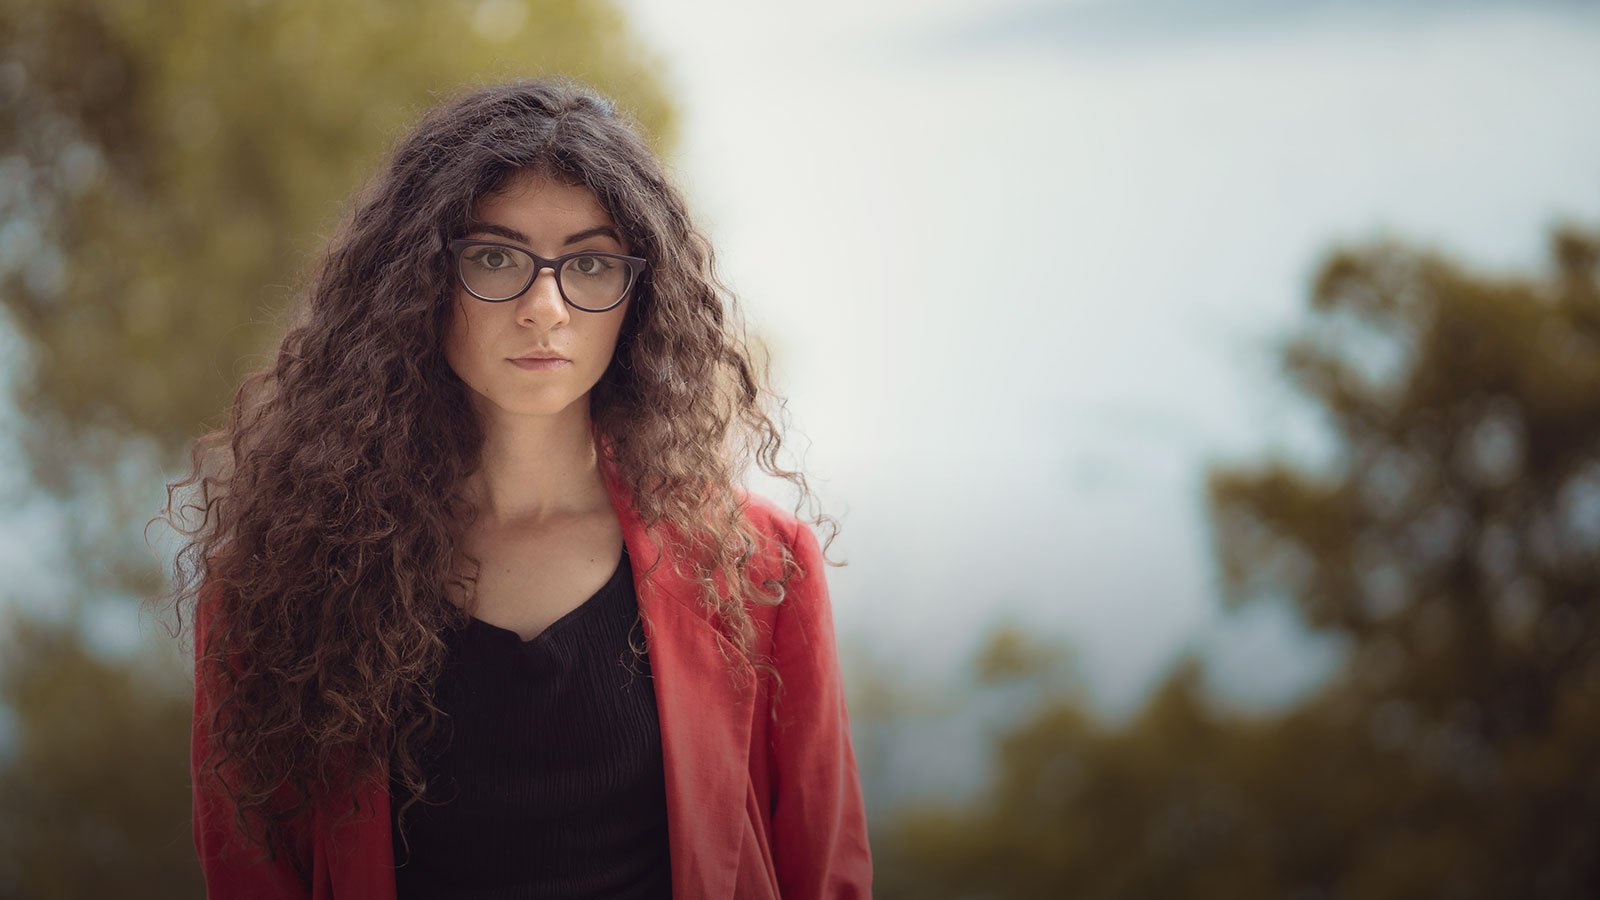 long hair style with glasses